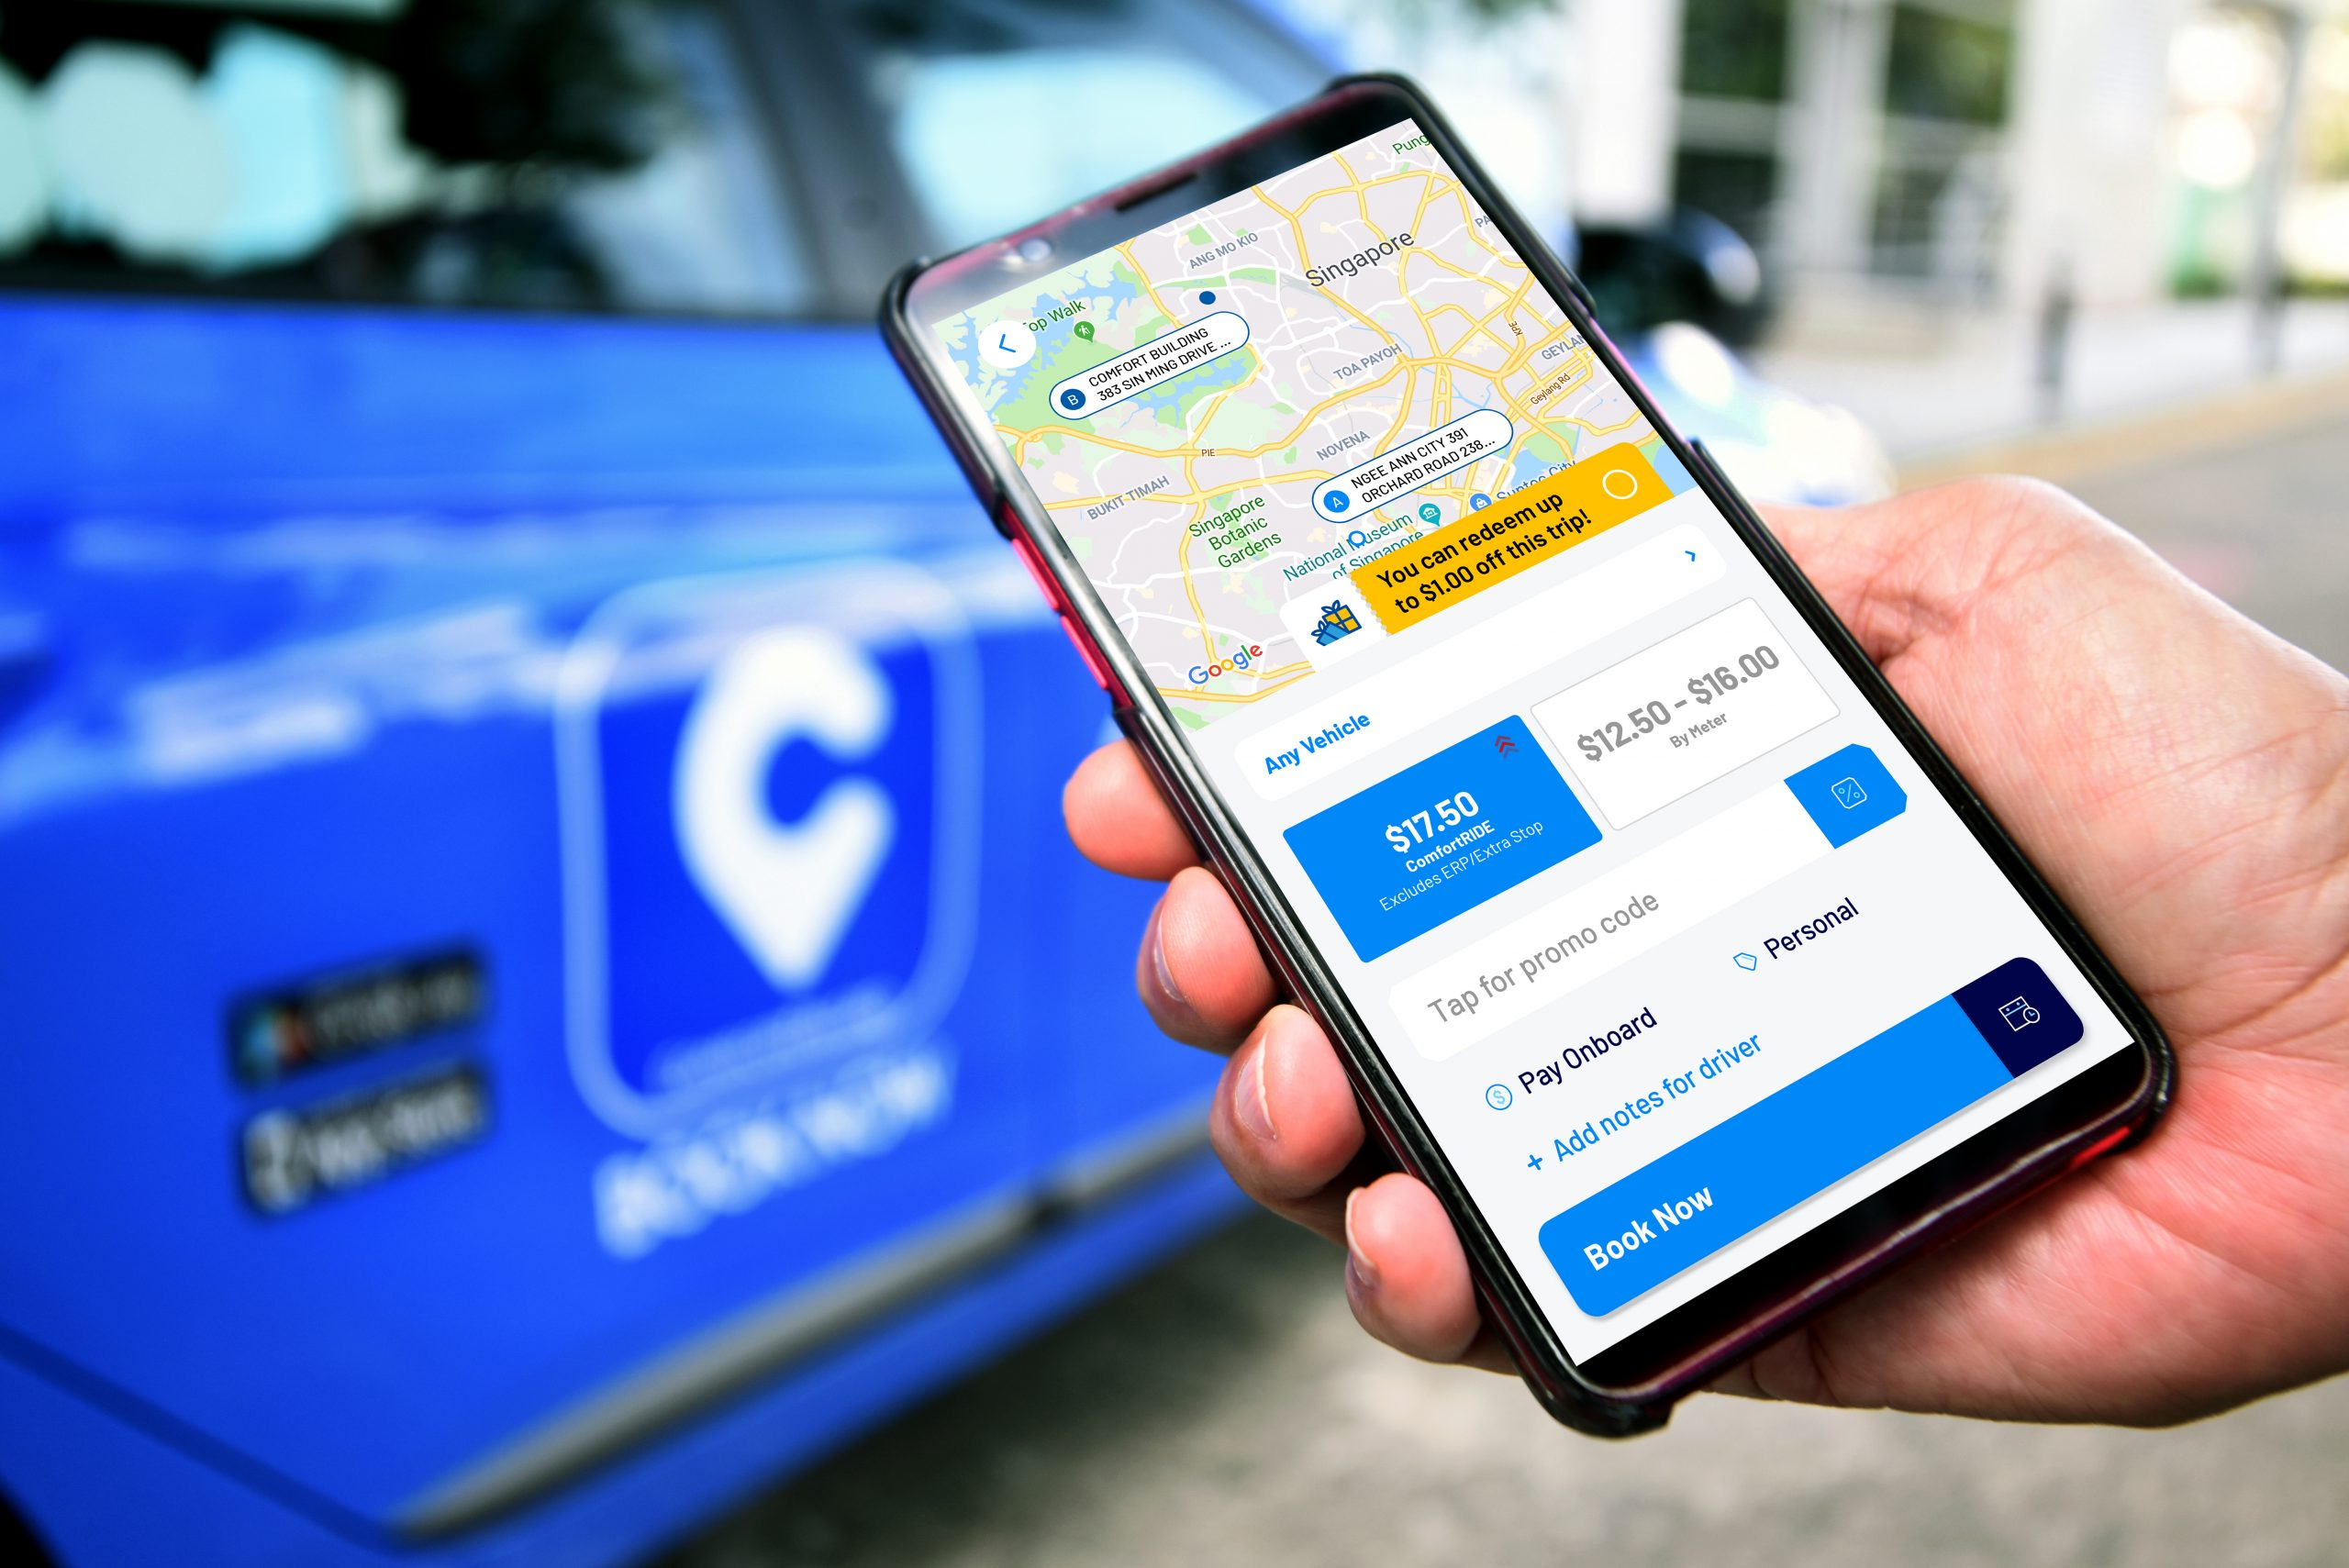 Check out why it is always good to compare taxi fares!